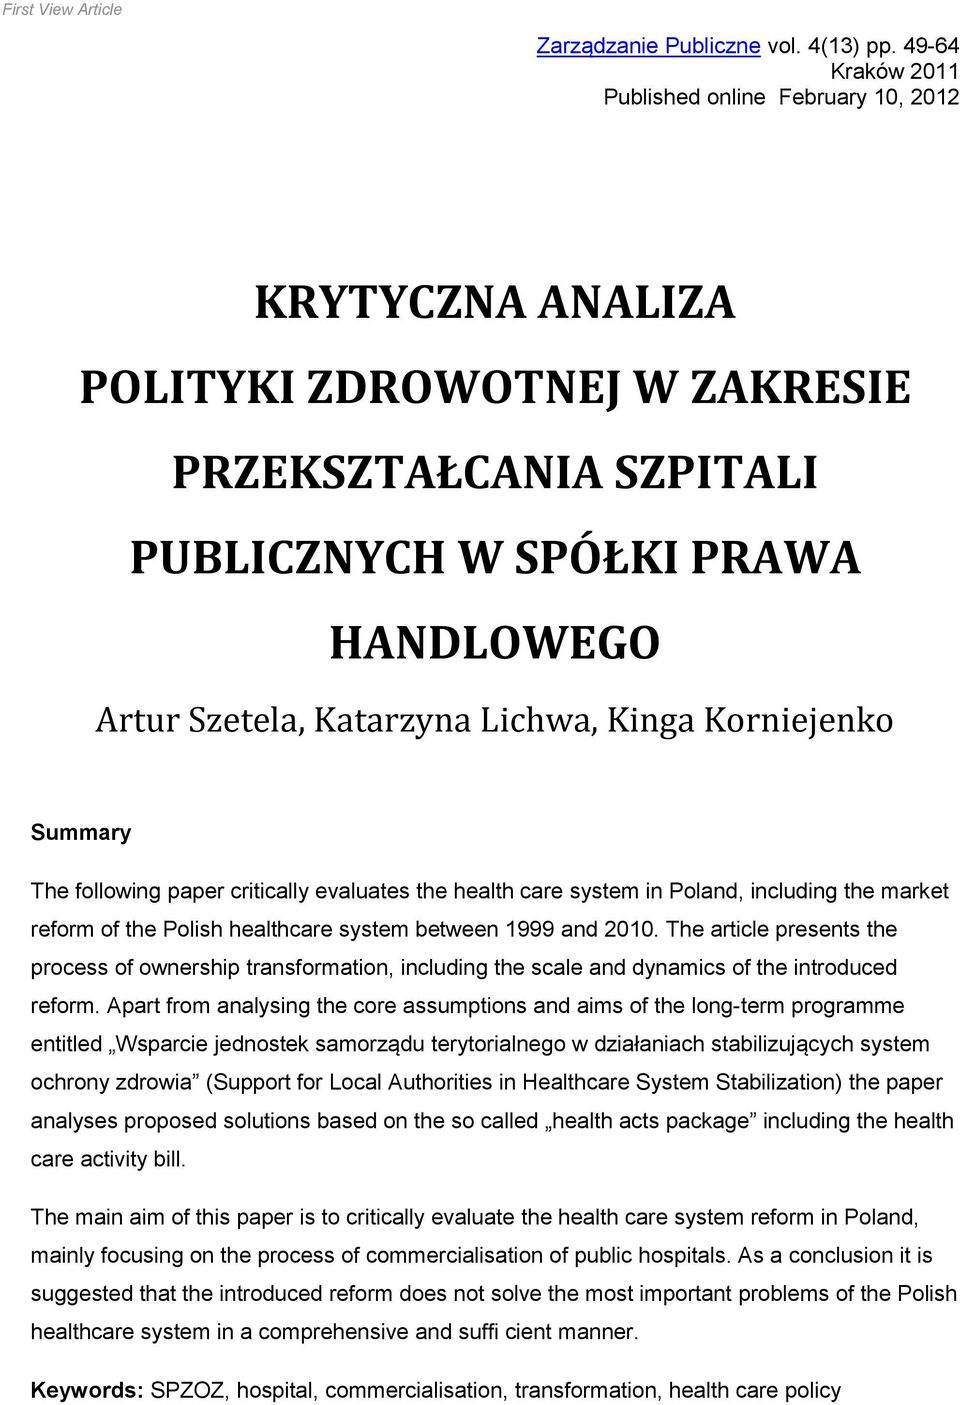 critically evaluates the health care system in Poland, including the market reform of the Polish healthcare system between 1999 and 2010.